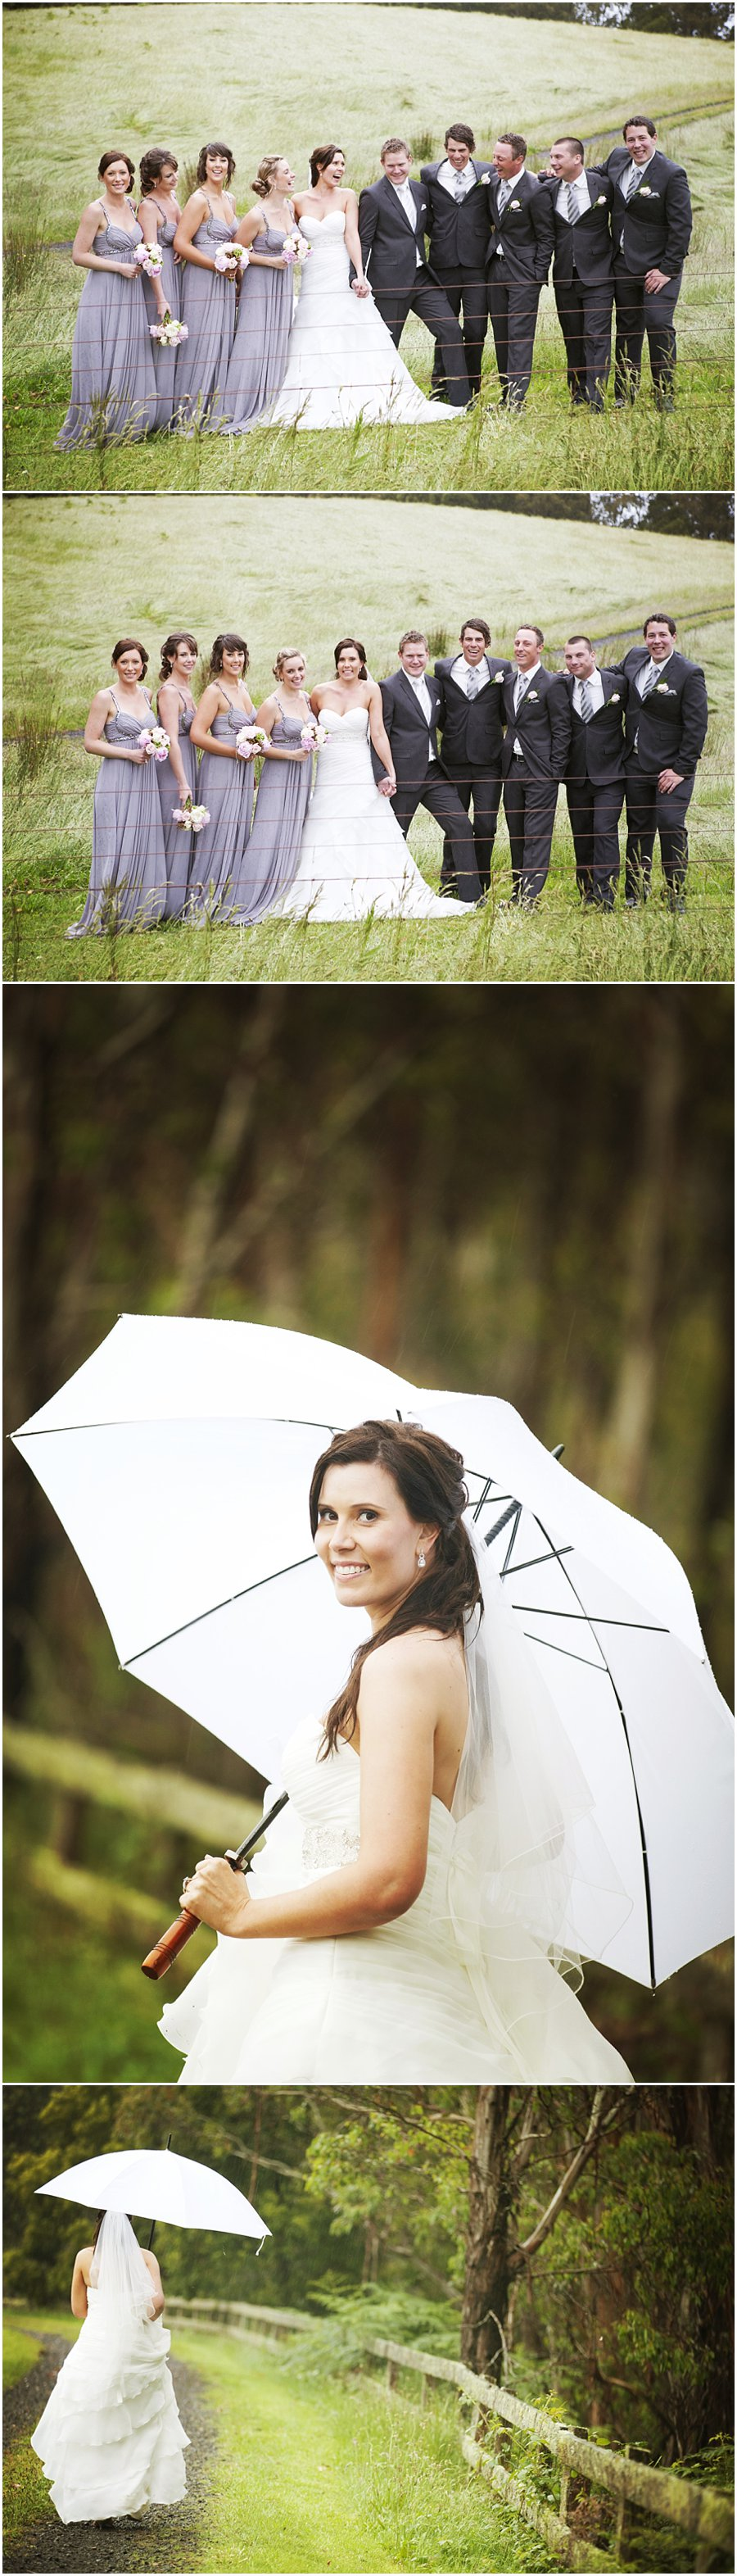 Kylie_Daniel_Holland_Cammeray_Waters_Wedding_14